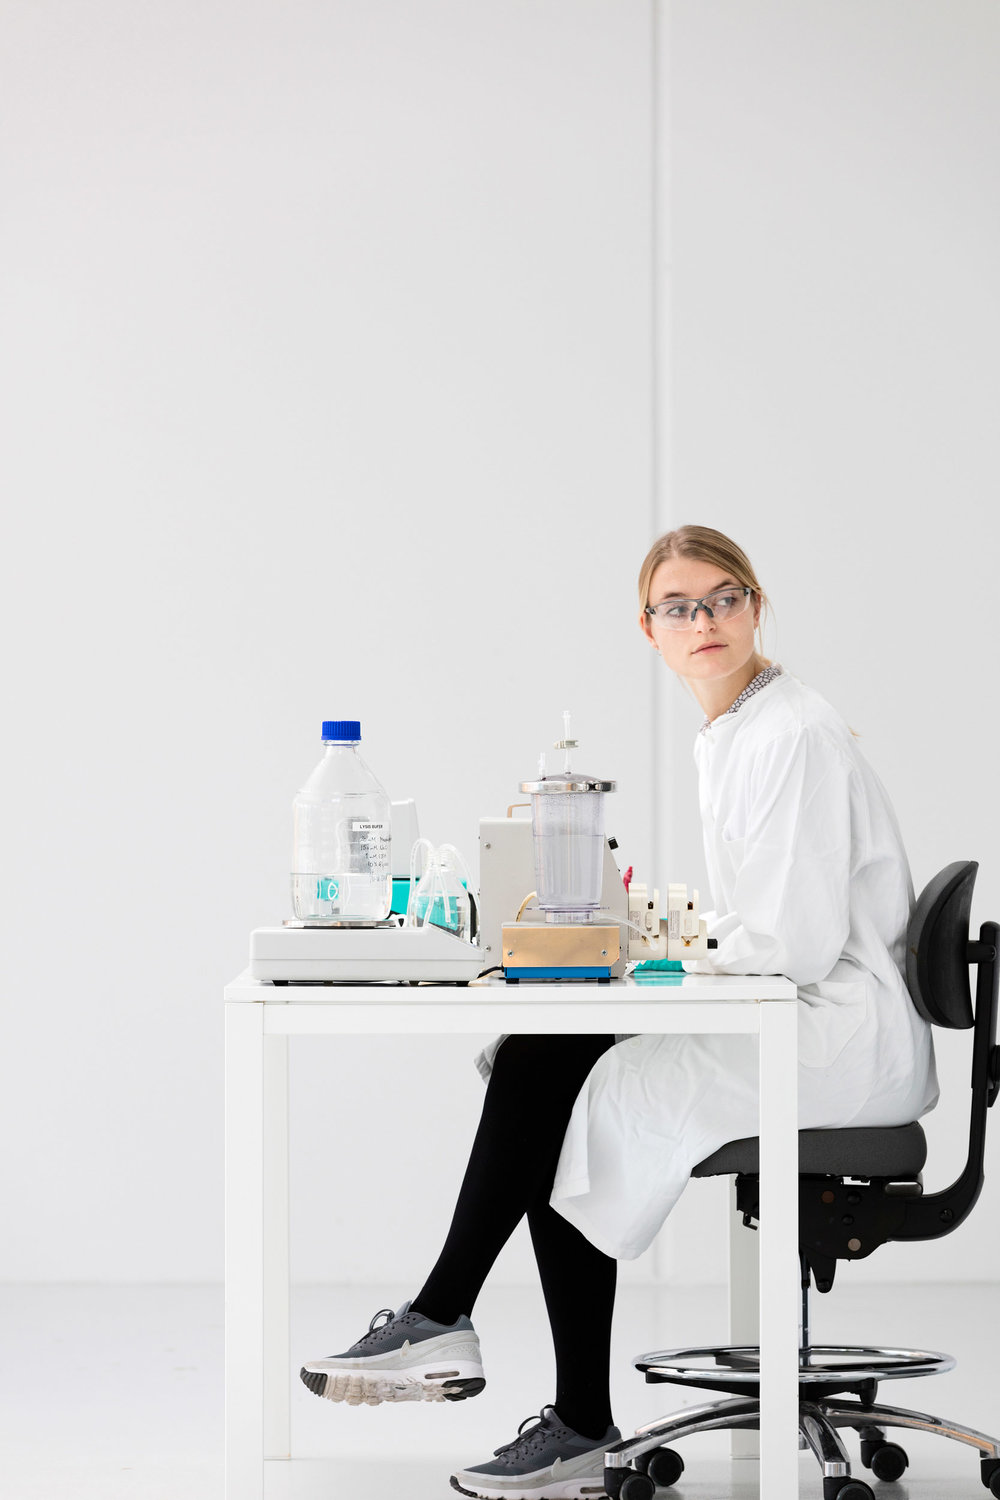 Imaging for the Golgi ApS website, a danish cleantech company  affiliated with another of our clients, Aquaporin.  In collaboration with branding company Umano we photographed at Golgi HQ and in the laboratories on site.